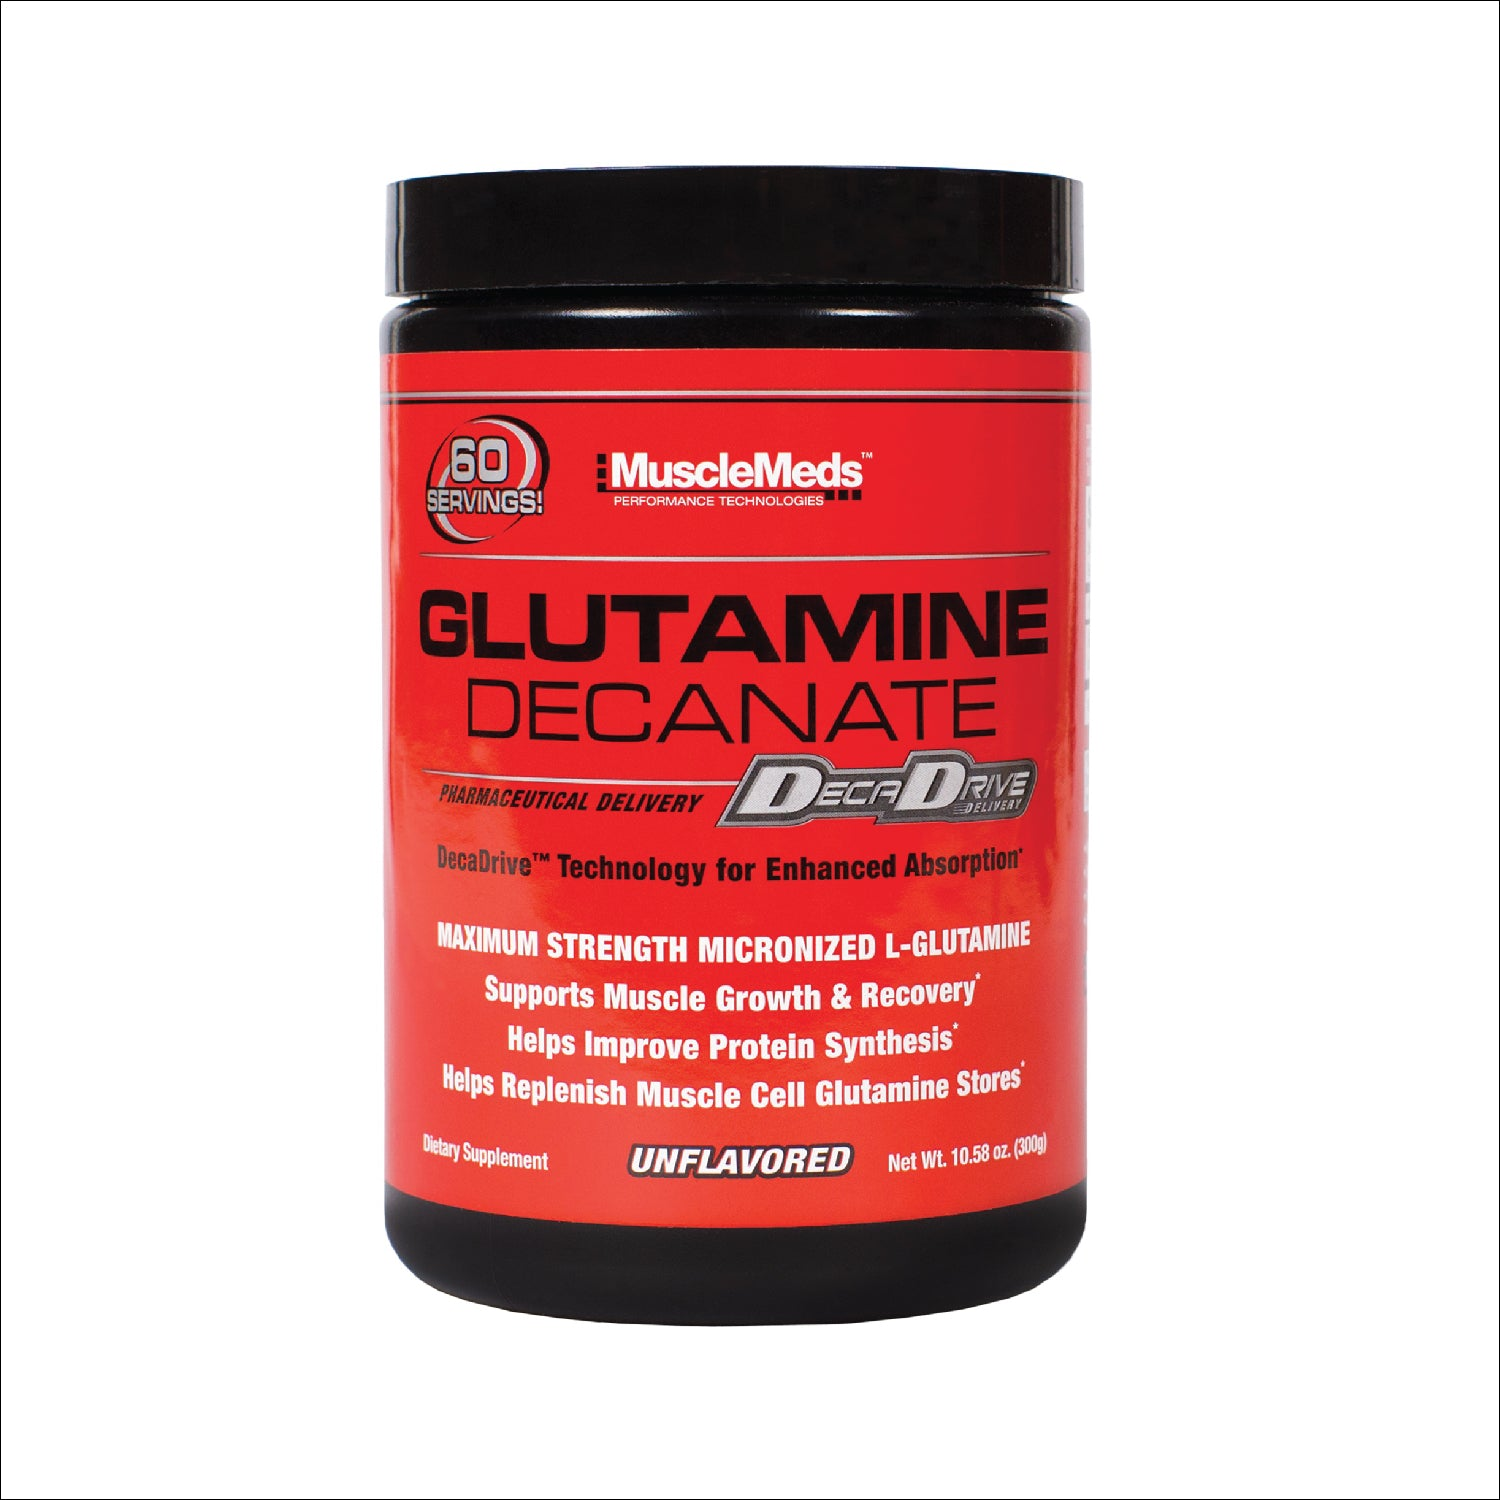 GLUTAMINE DECANATE BOTTLE